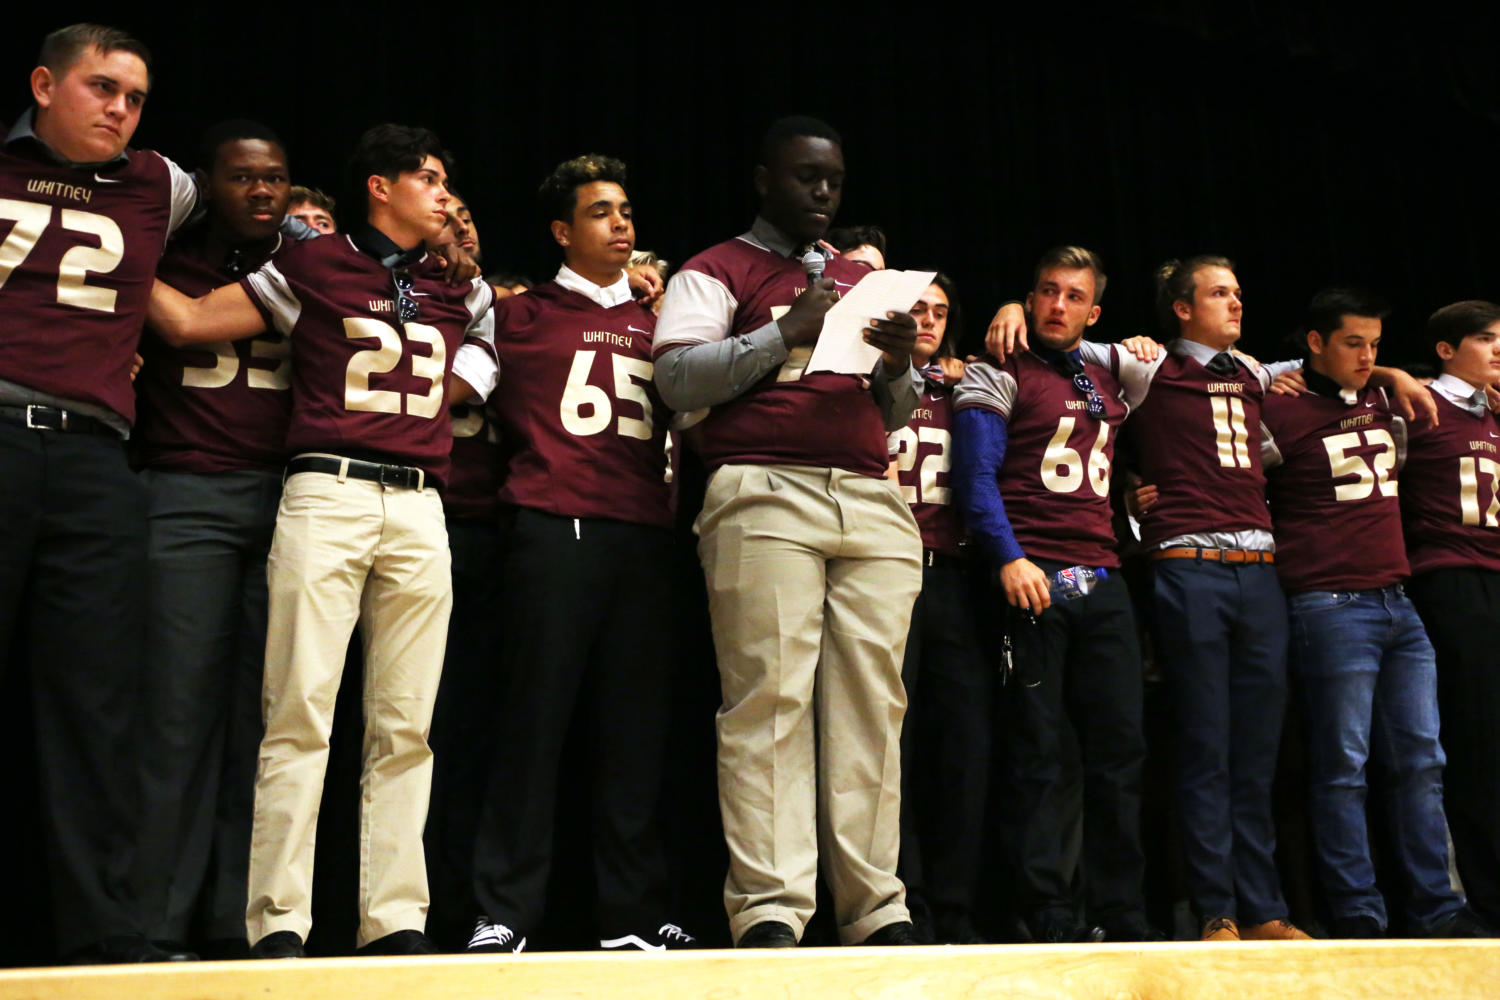 During the meeting Aug. 20, Xzavier Caldwell and the football program gave a speech to voice their opinions.